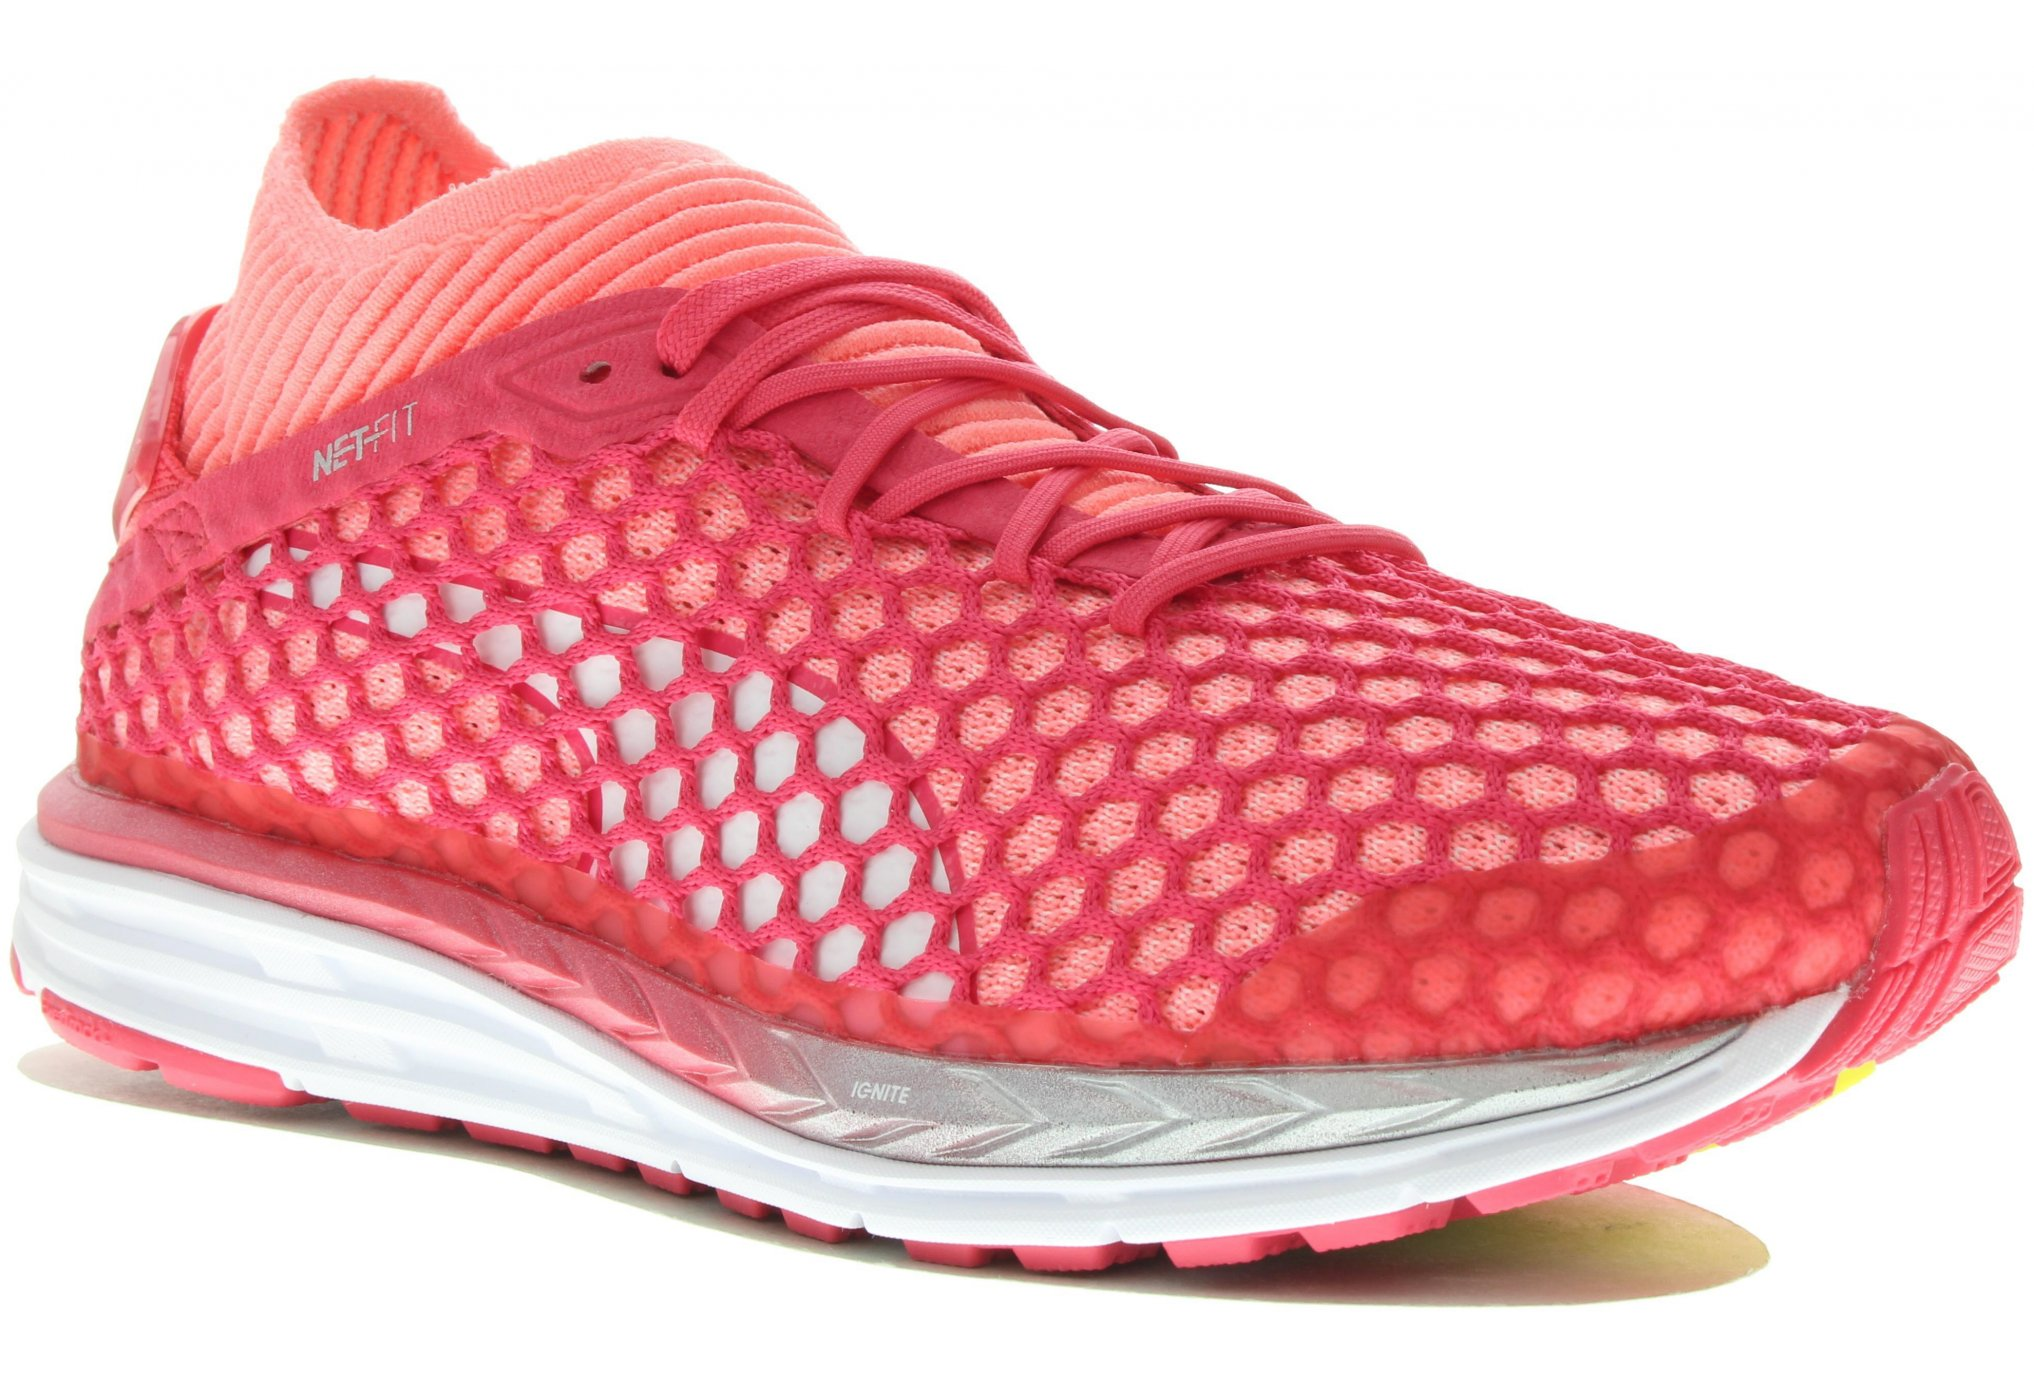 Puma Speed Ignite Netfit 2 W Chaussures running femme